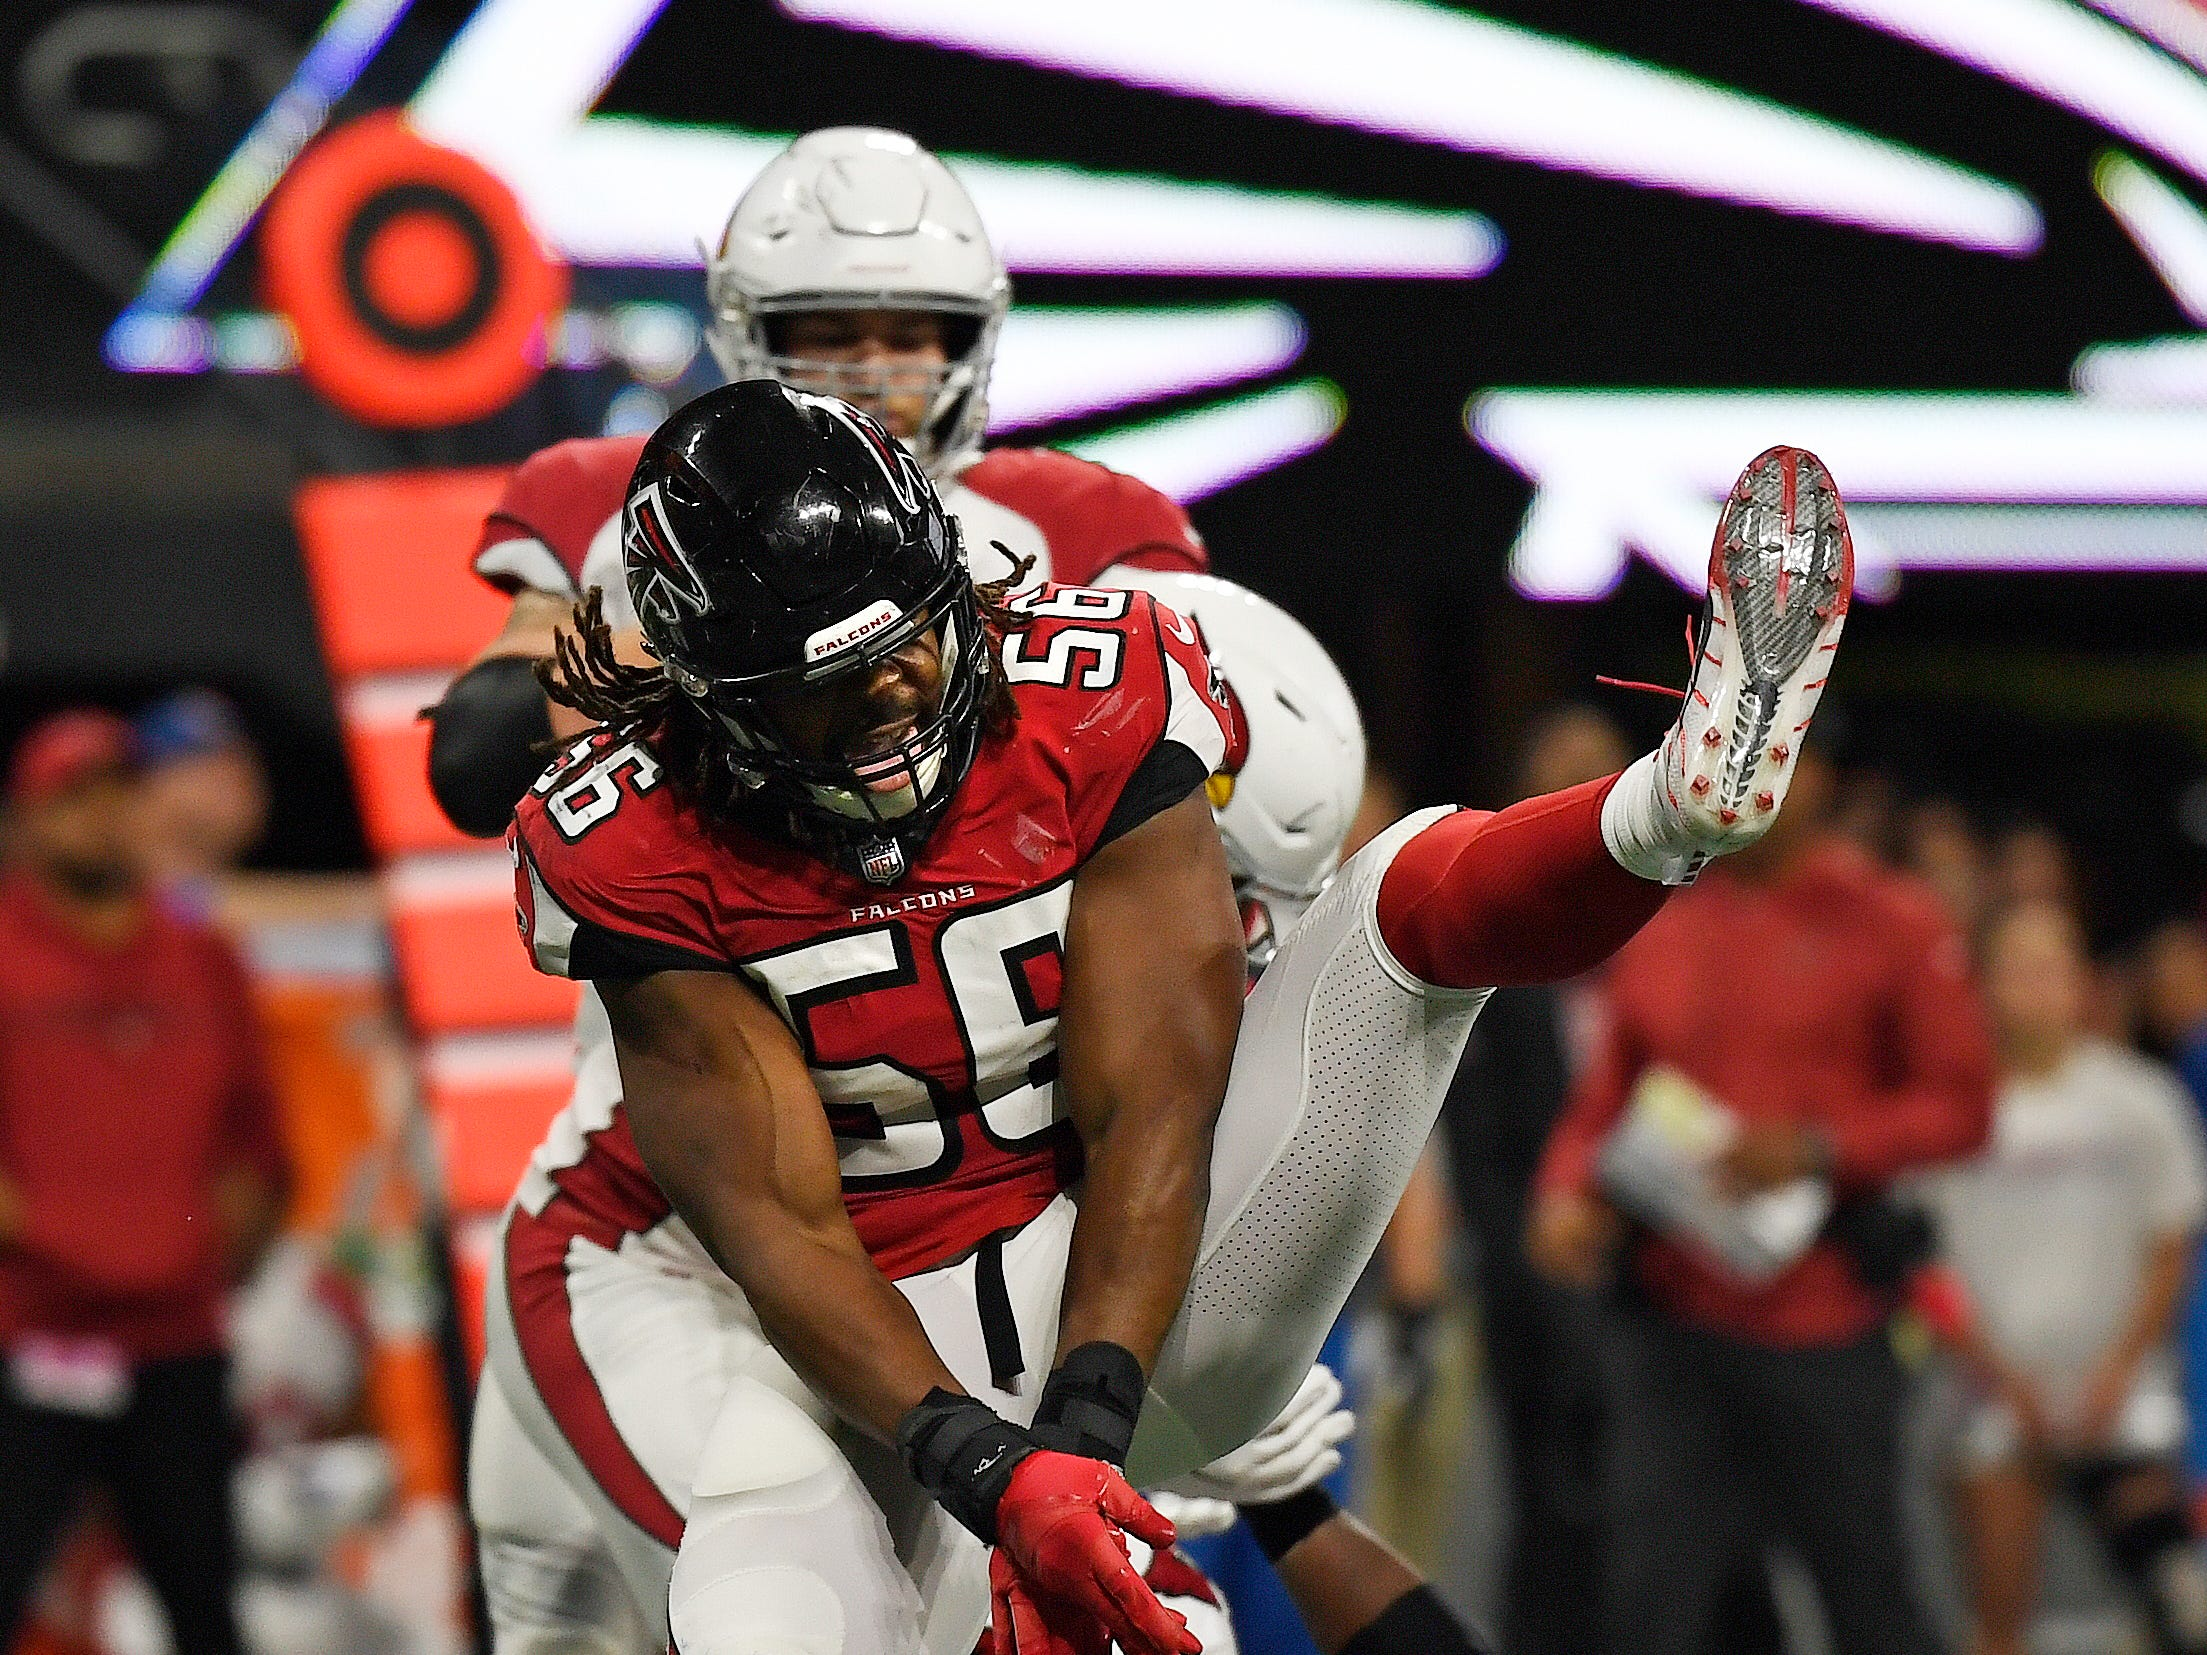 Atlanta Falcons defensive end Steven Means (56) celebrates a sack during the second half of an NFL football game Arizona Cardinals, Sunday, Dec. 16, 2018, in Atlanta.